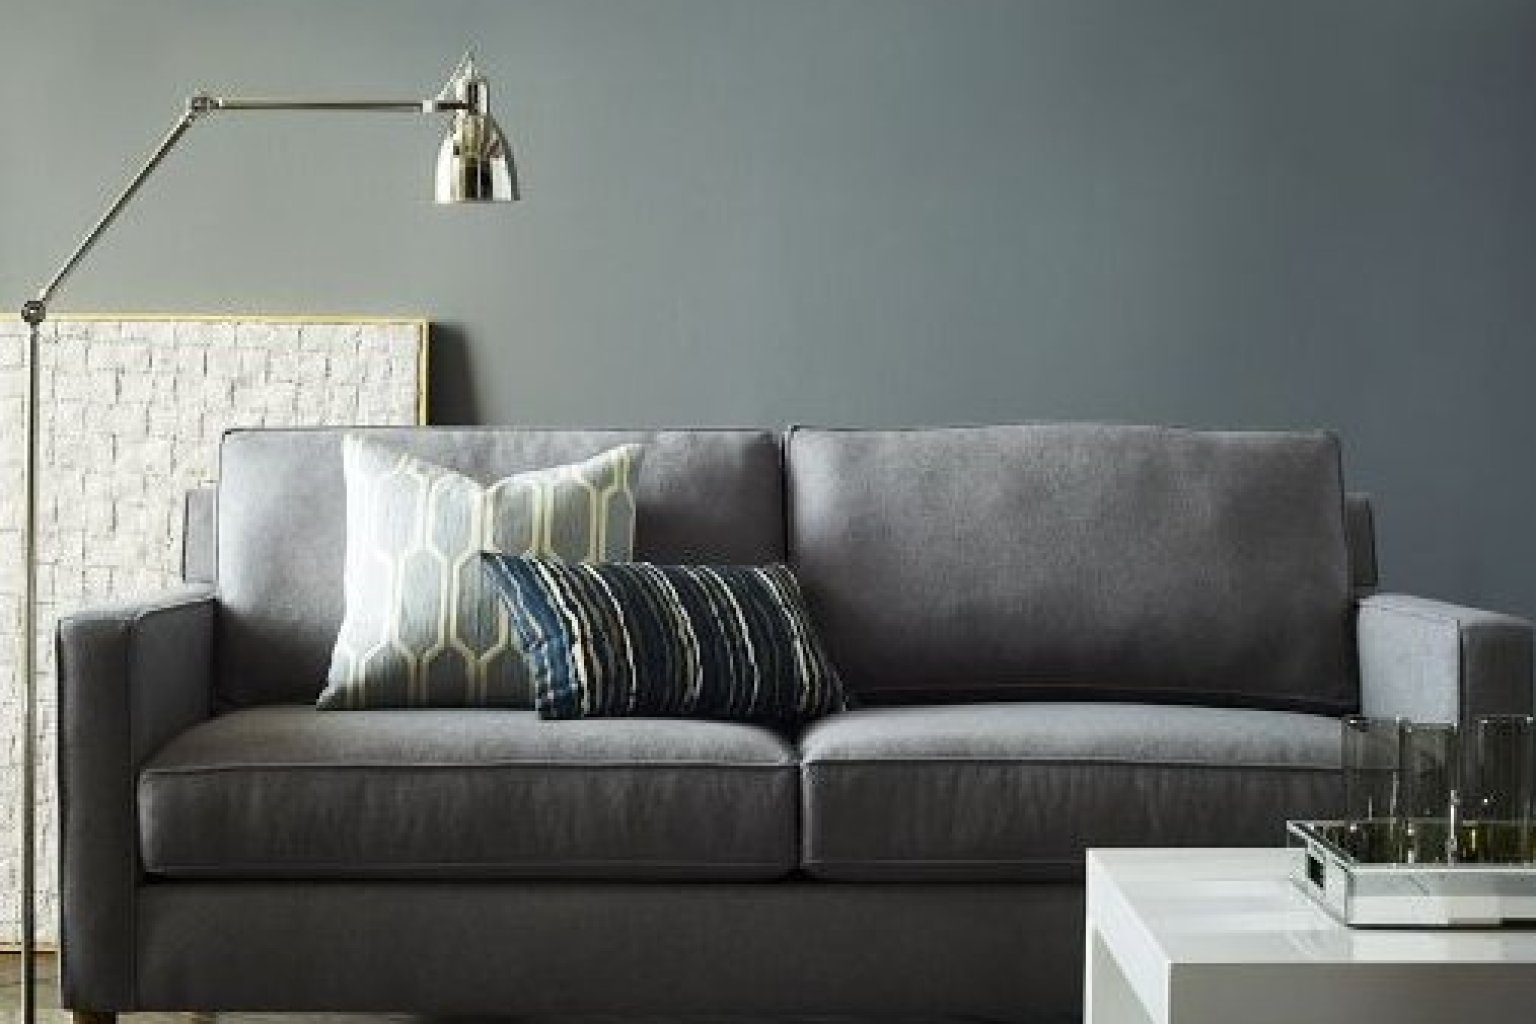 6 Couches For Small Apartments That Will Actually Fit In Your Space PHOTOS